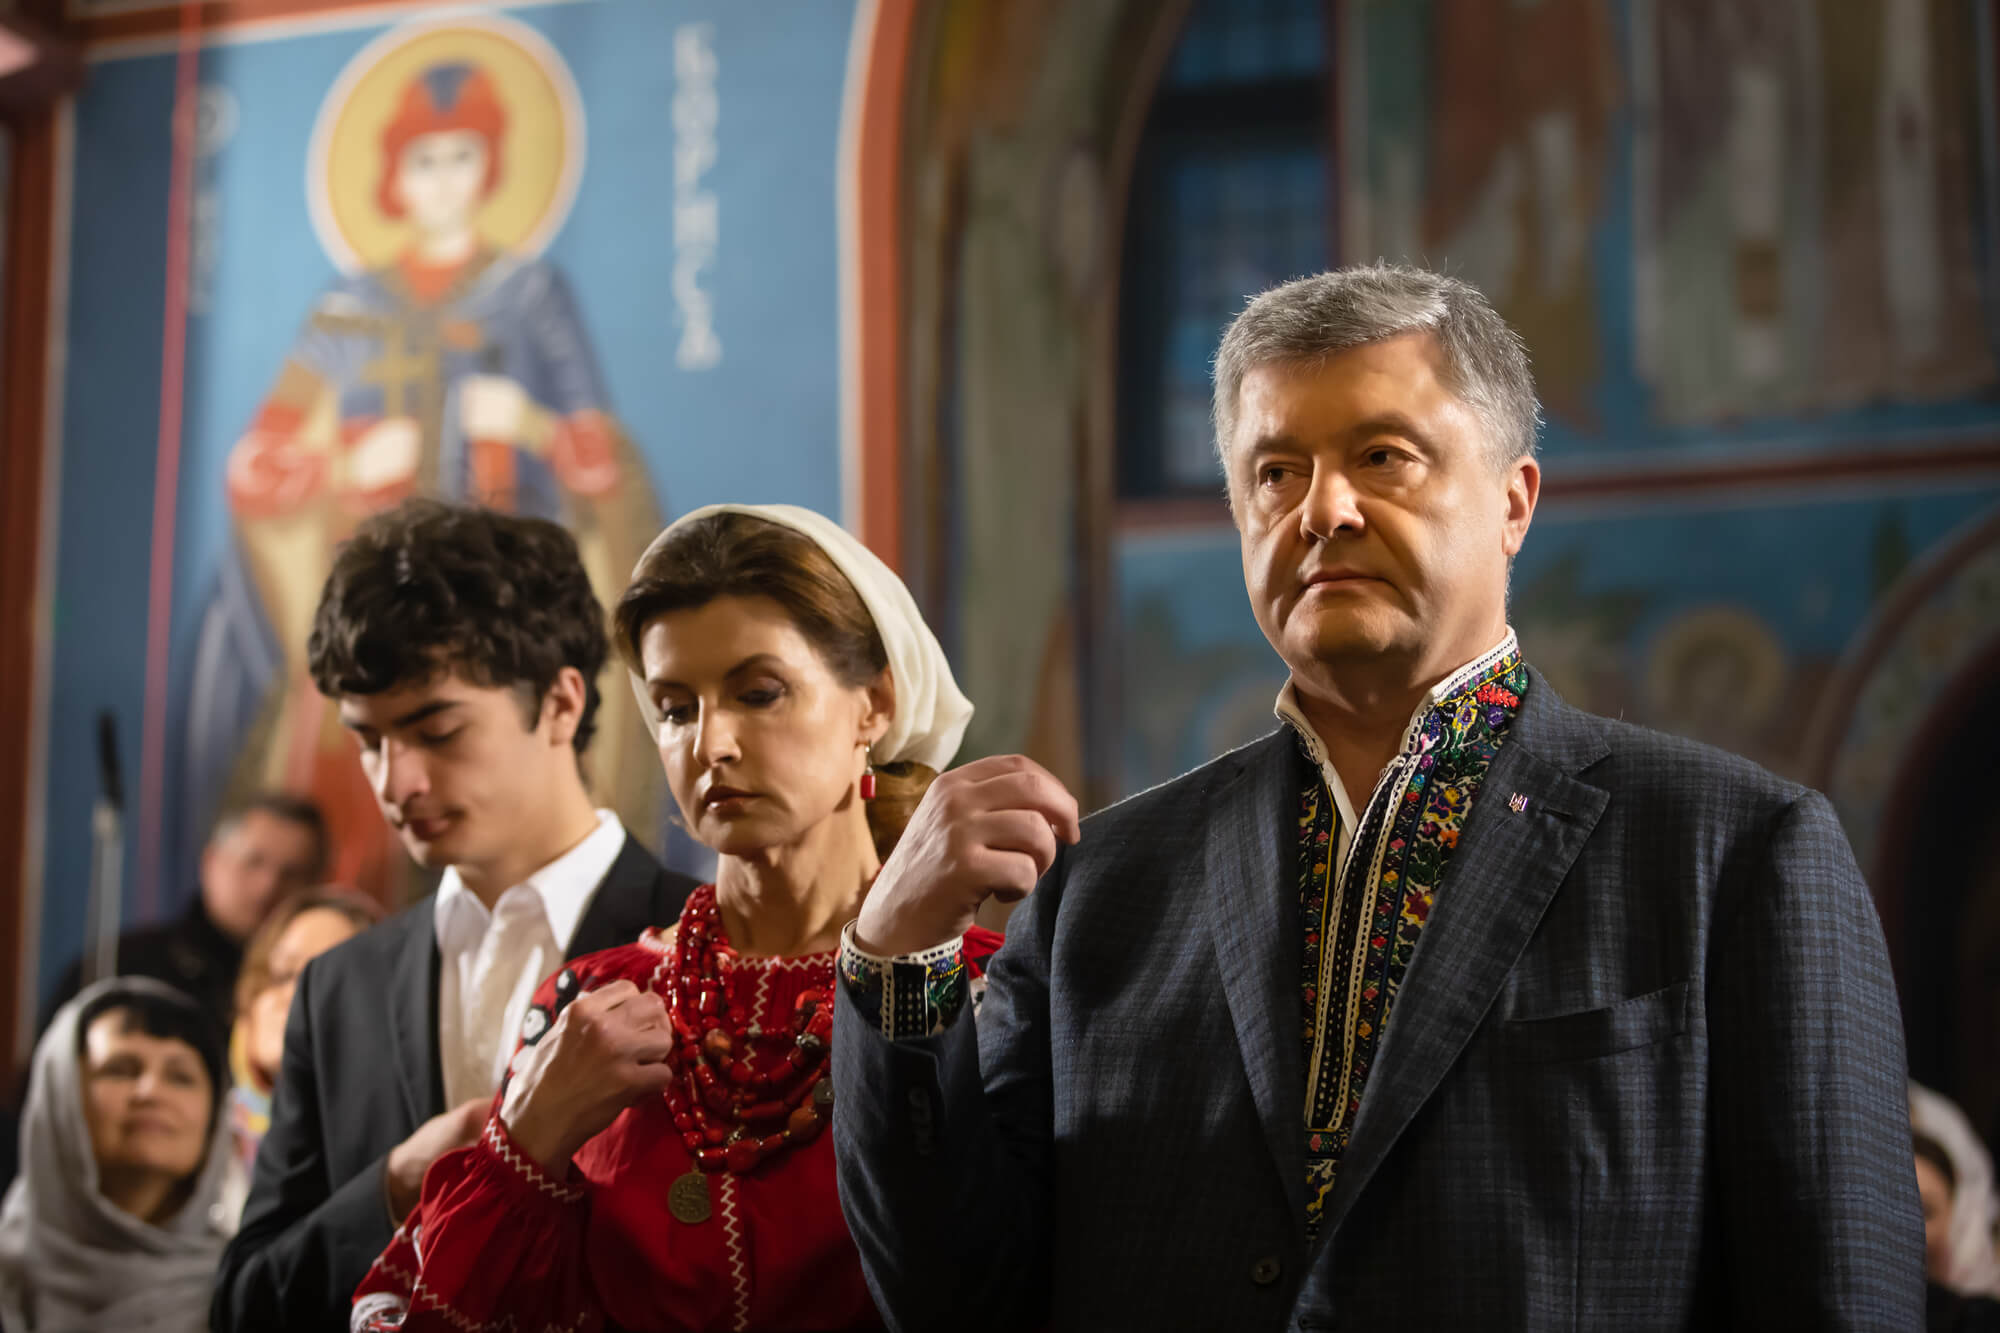 Acts of Faith: Did Religion Influence Voting for Poroshenko After All?